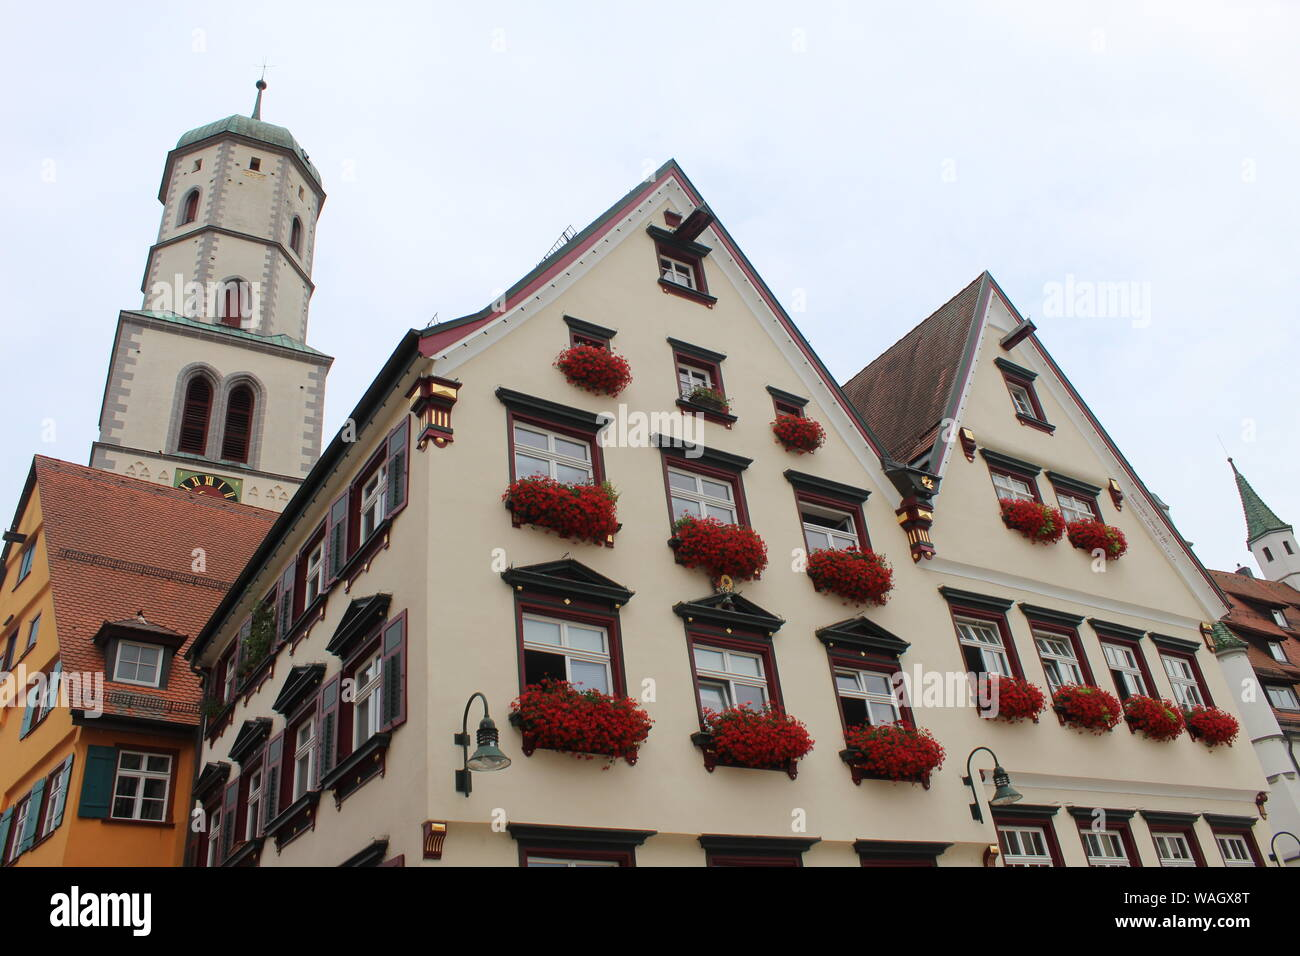 Architecture in Biberach, Germany Stock Photo